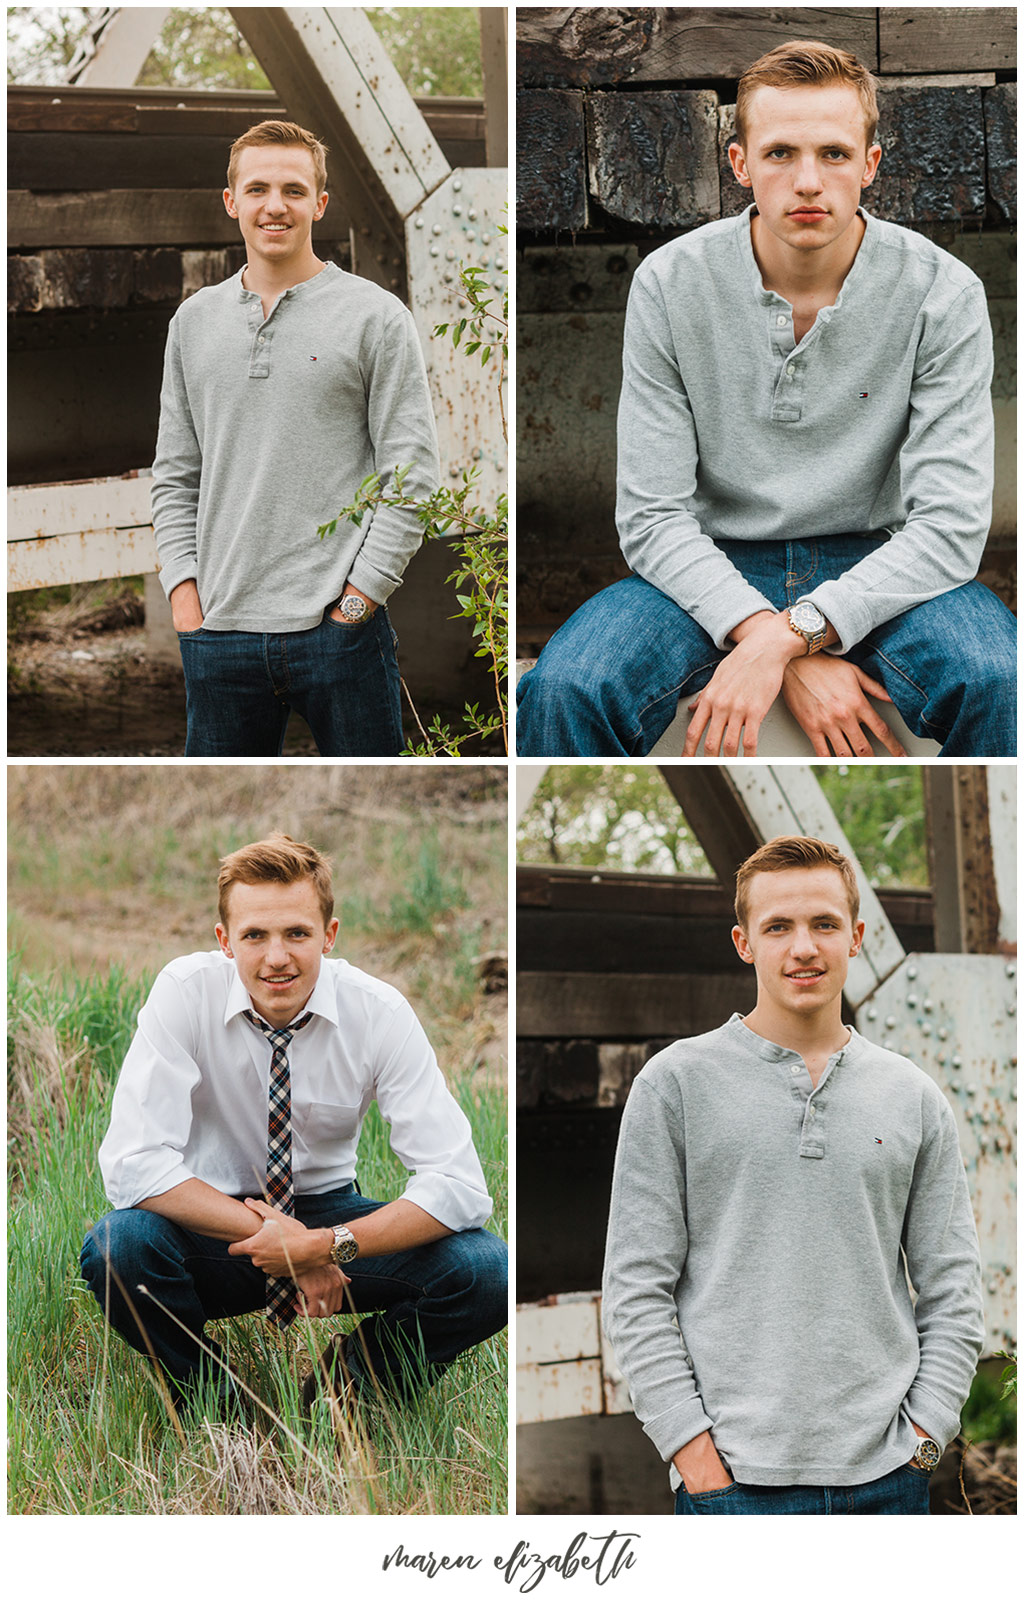 Since missionaries for the Church of Jesus Christ of Latter-day Saints can now serve when 18 I take a lot of Senior & Missionary pictures during the same session! Missionaries teach fundamental gospel truths that can change your life when you learn with real intent and put them to the test in your life. Find out more at Mormon.org.   Arizona Senior Photographer   Arizona Missionary Photographer   Maren Elizabeth Photography